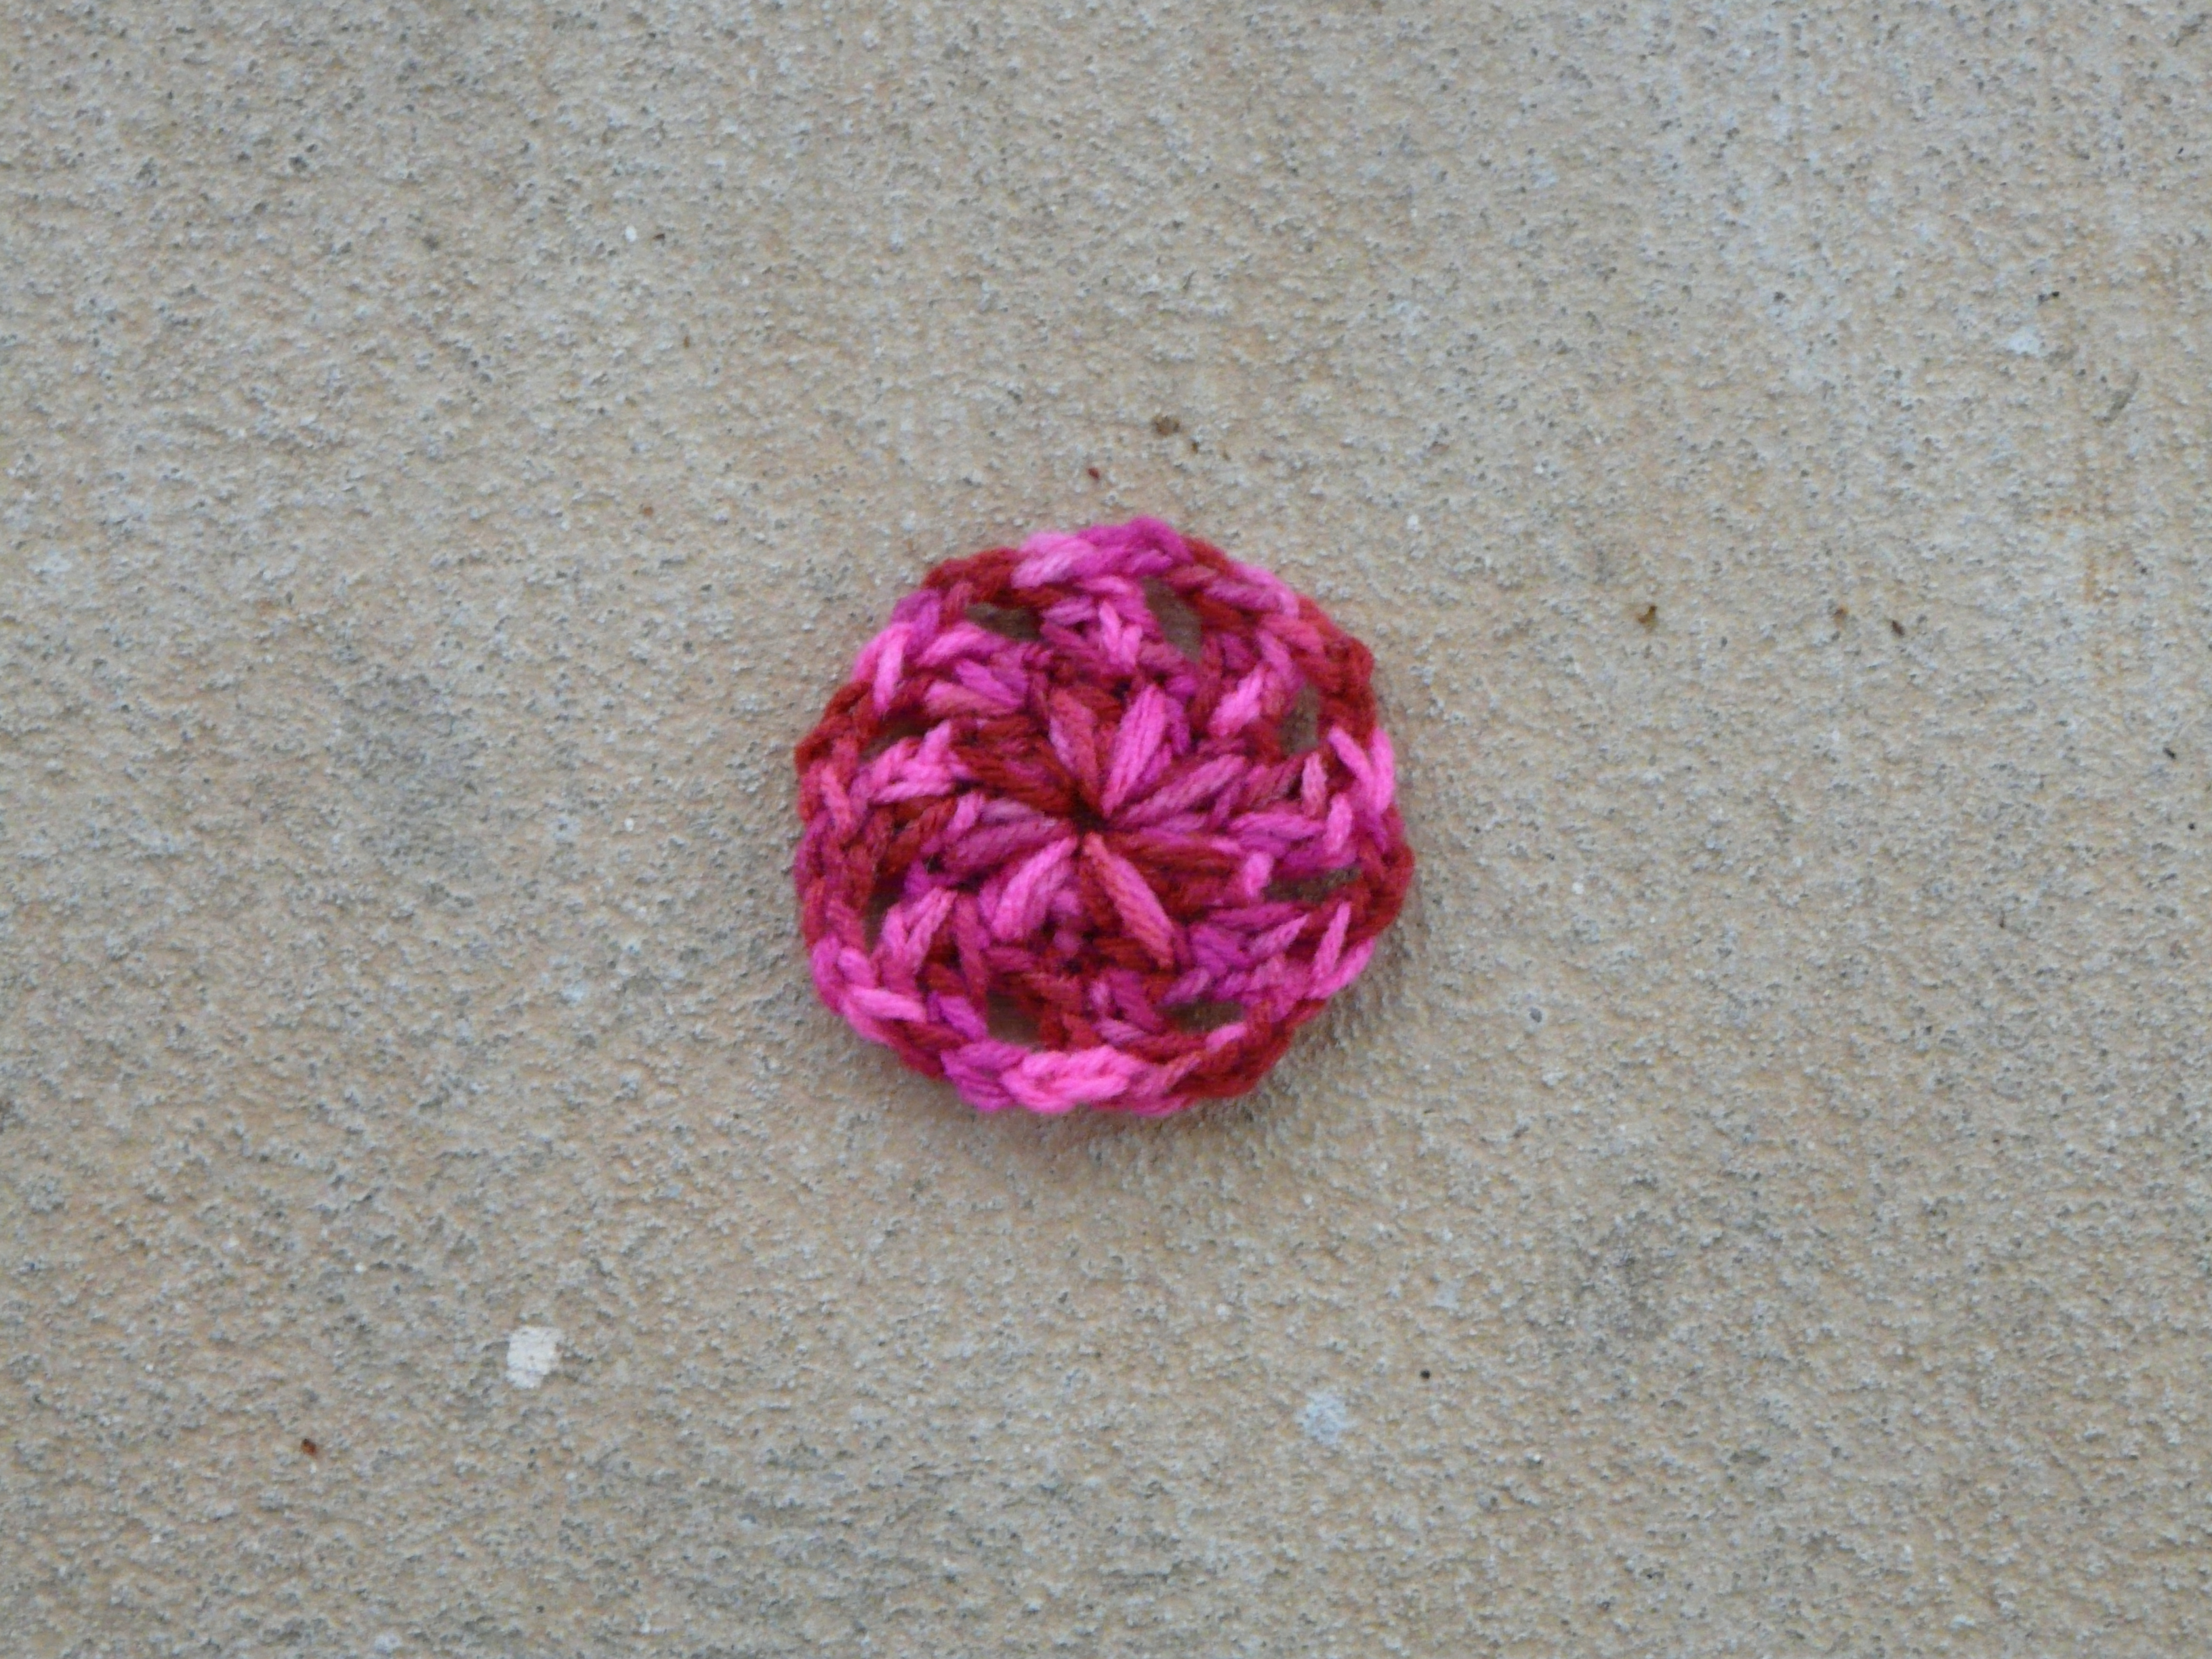 Macaria Headband with Wagon Wheel Crocheted Flower Crochet Patterns